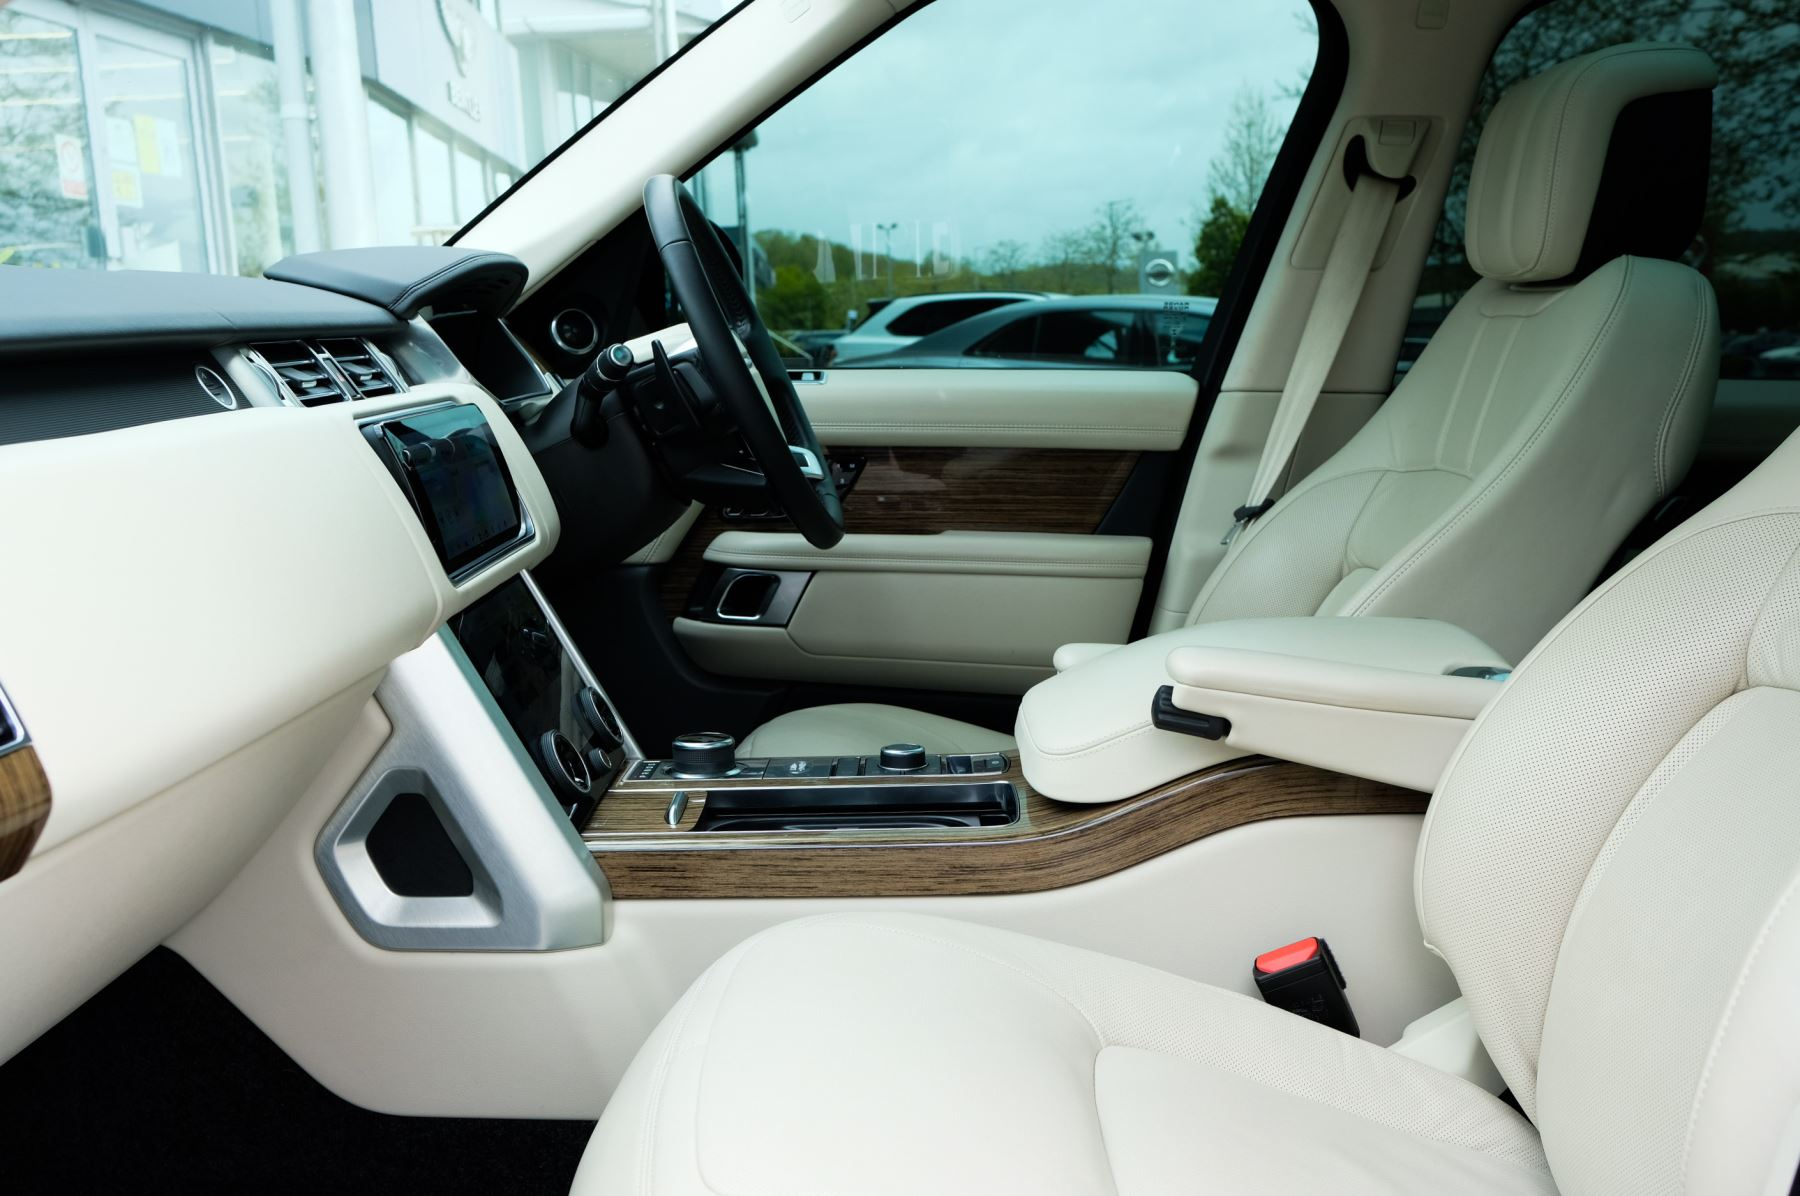 Land Rover Range Rover 3.0 SDV6 Vogue SE - Panoramic Roof - Privacy Glass - 21 inch Alloys image 19